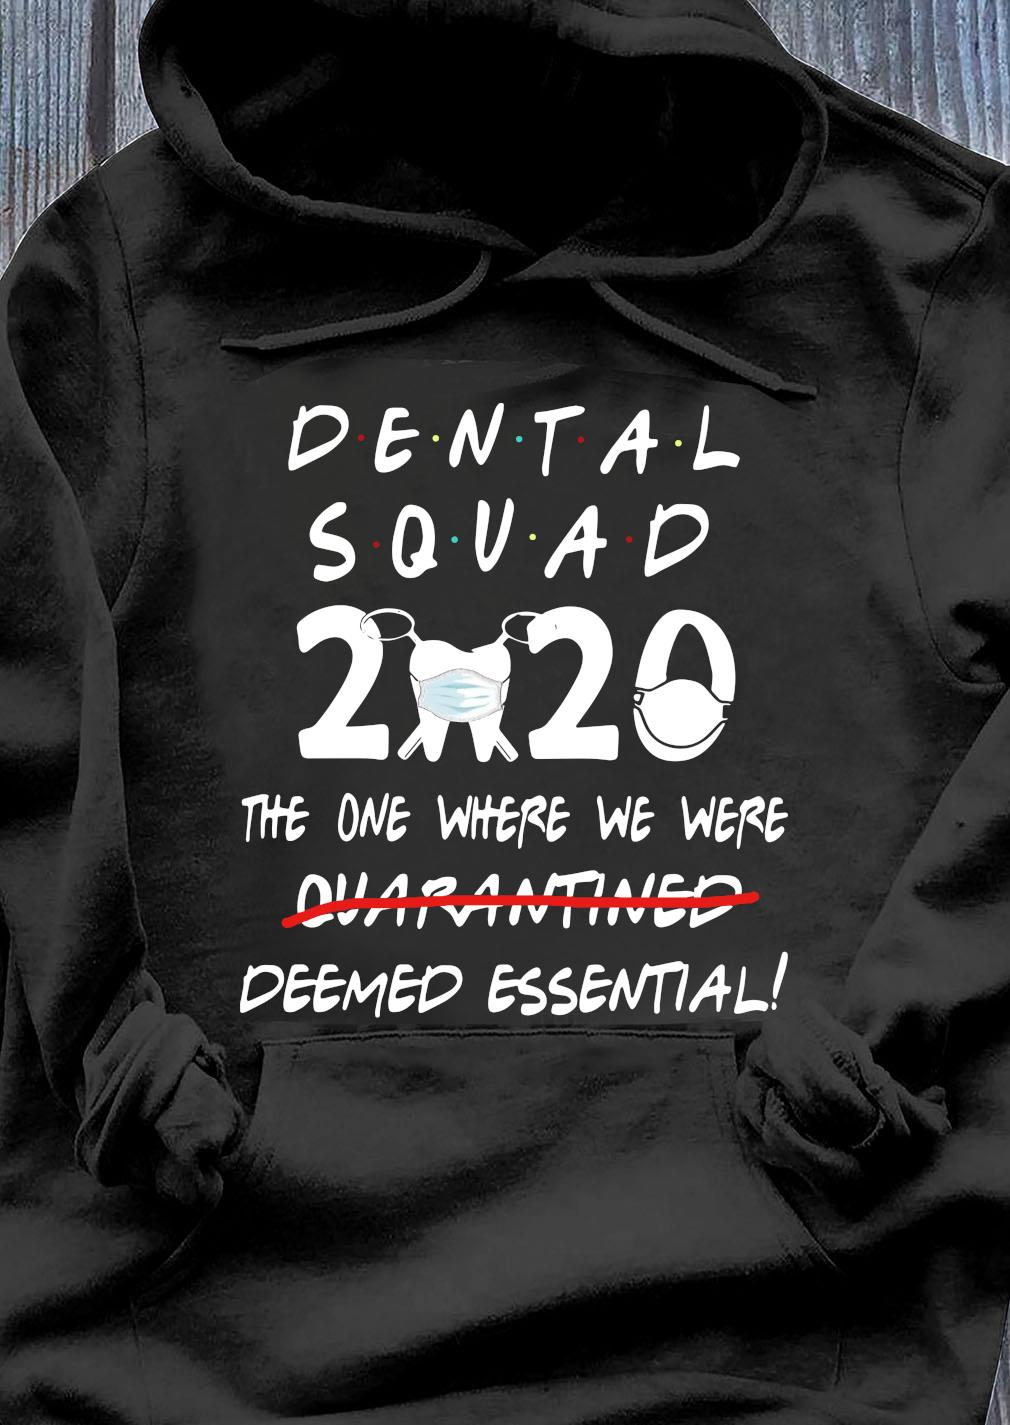 Dental Squad 2020 The One Where We Were Deemed Essential Shirt Hoodie